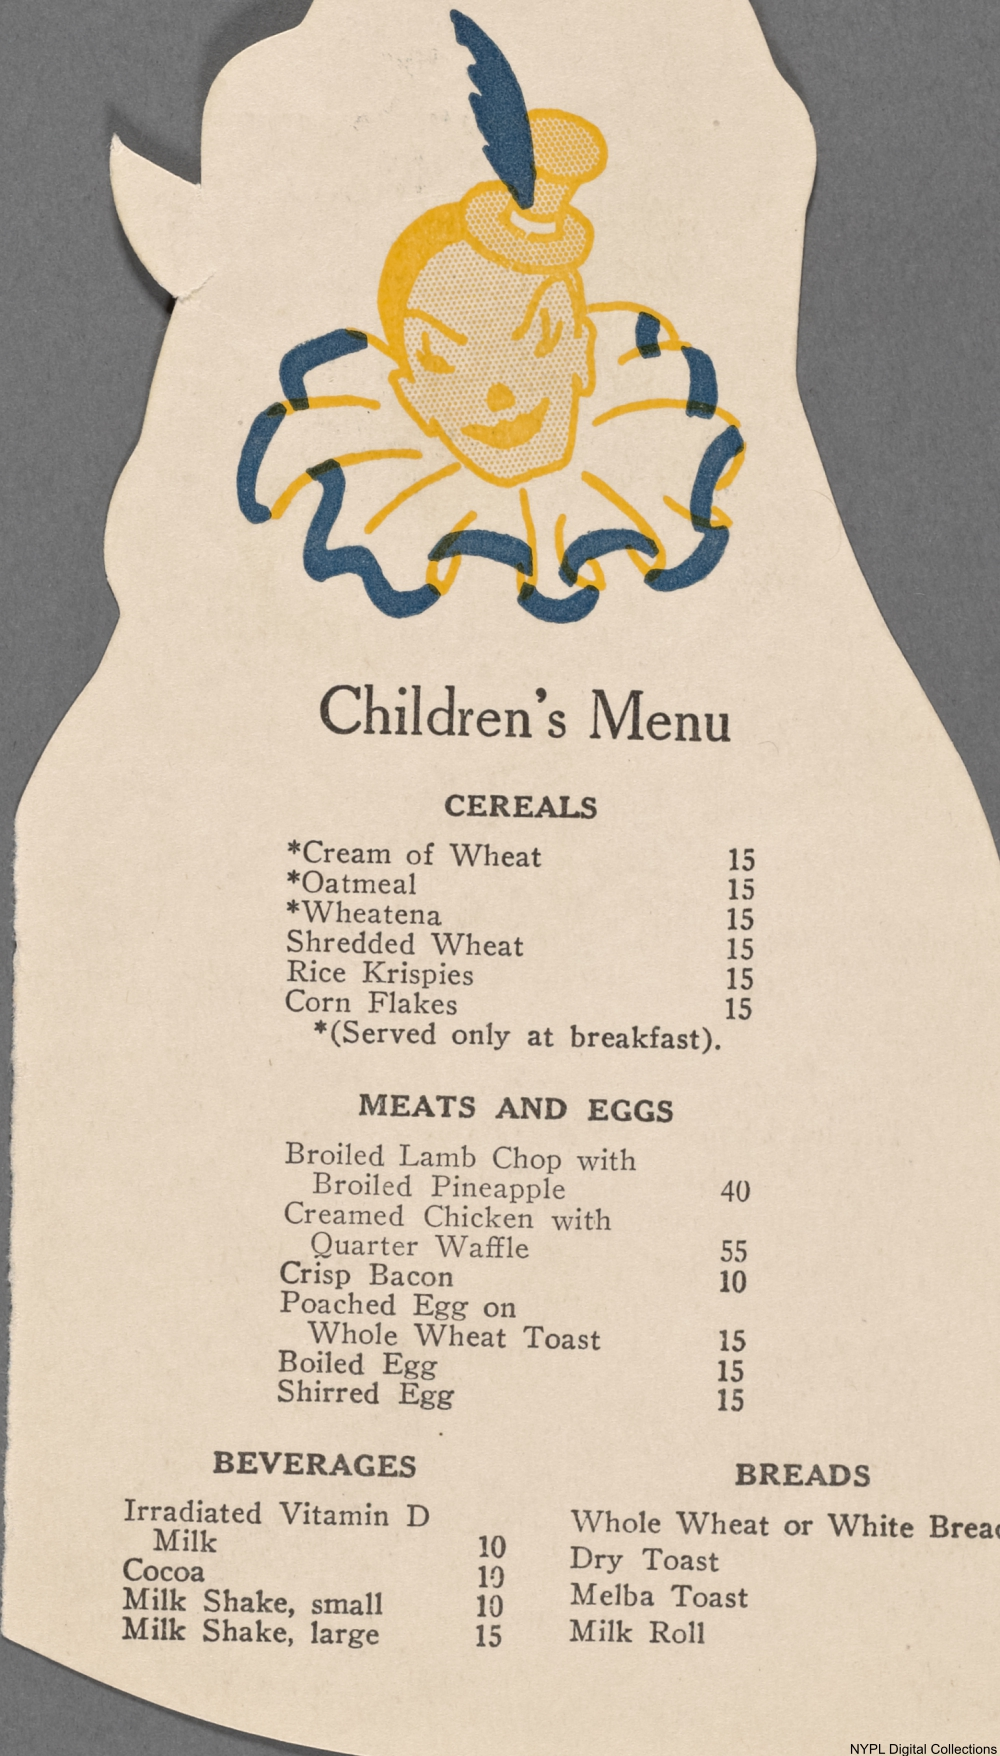 Kids Menu Items from a Century Ago That Would Never Fly Today